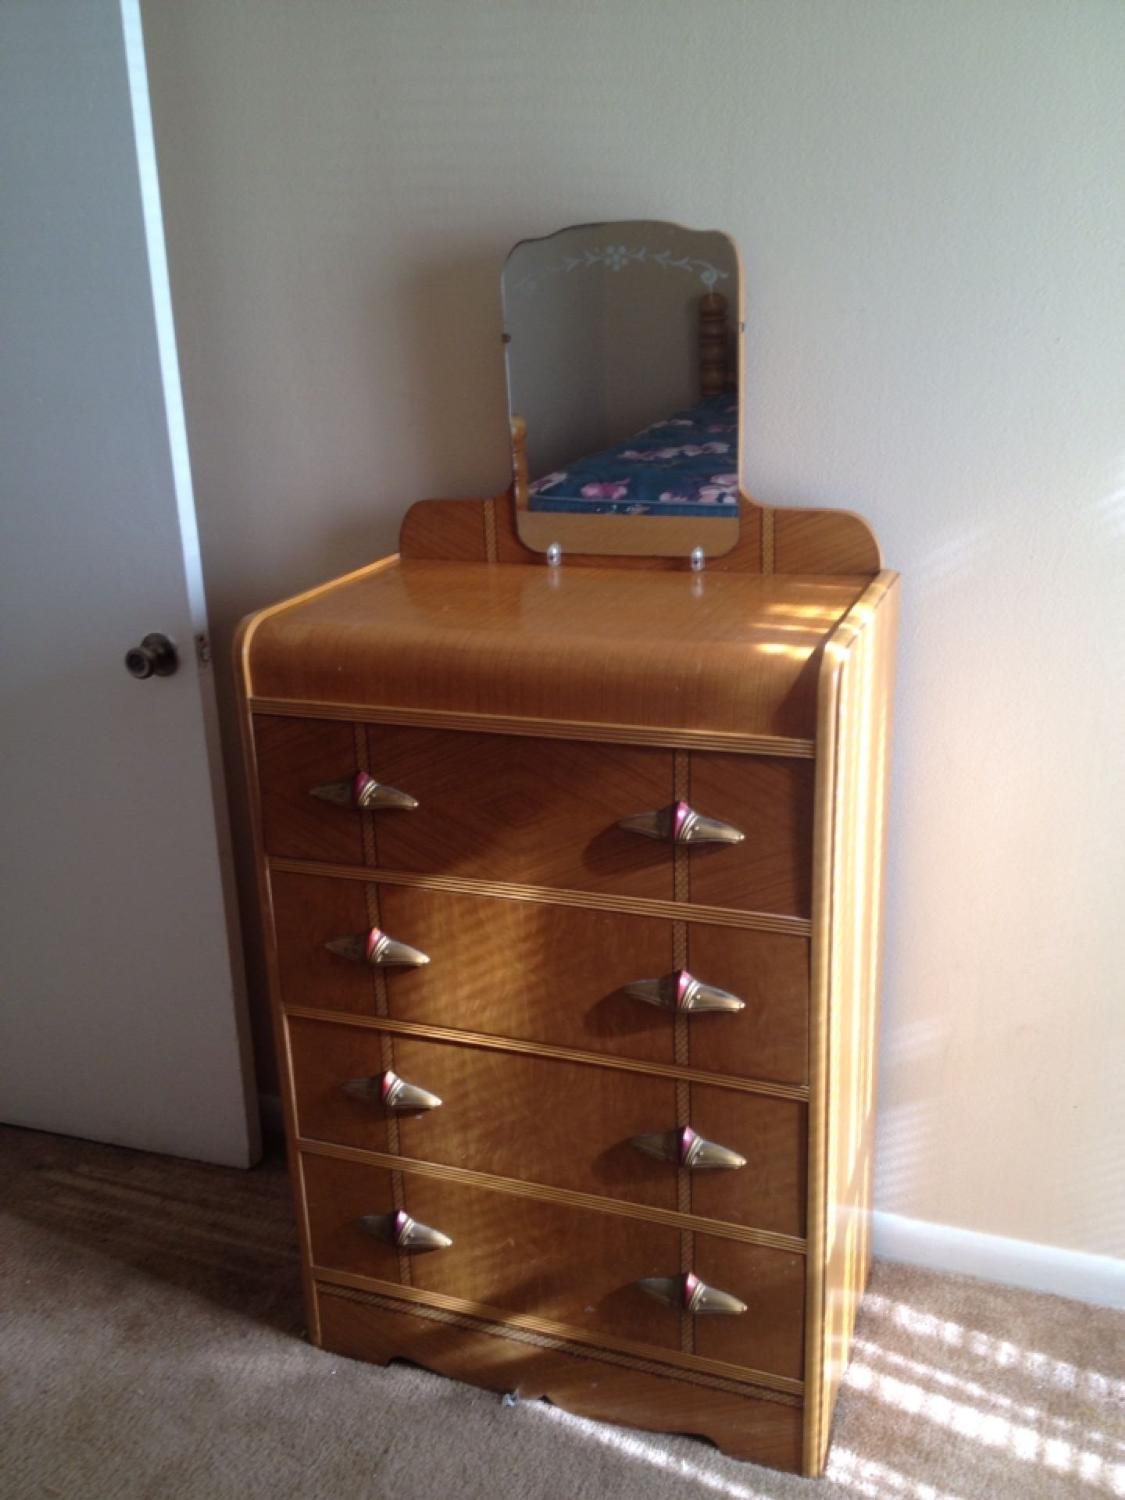 Best 3 Pc Antique Cannonball Bedroom Suit Very Well Built For Sale In Spring Hill Tennessee For 2021